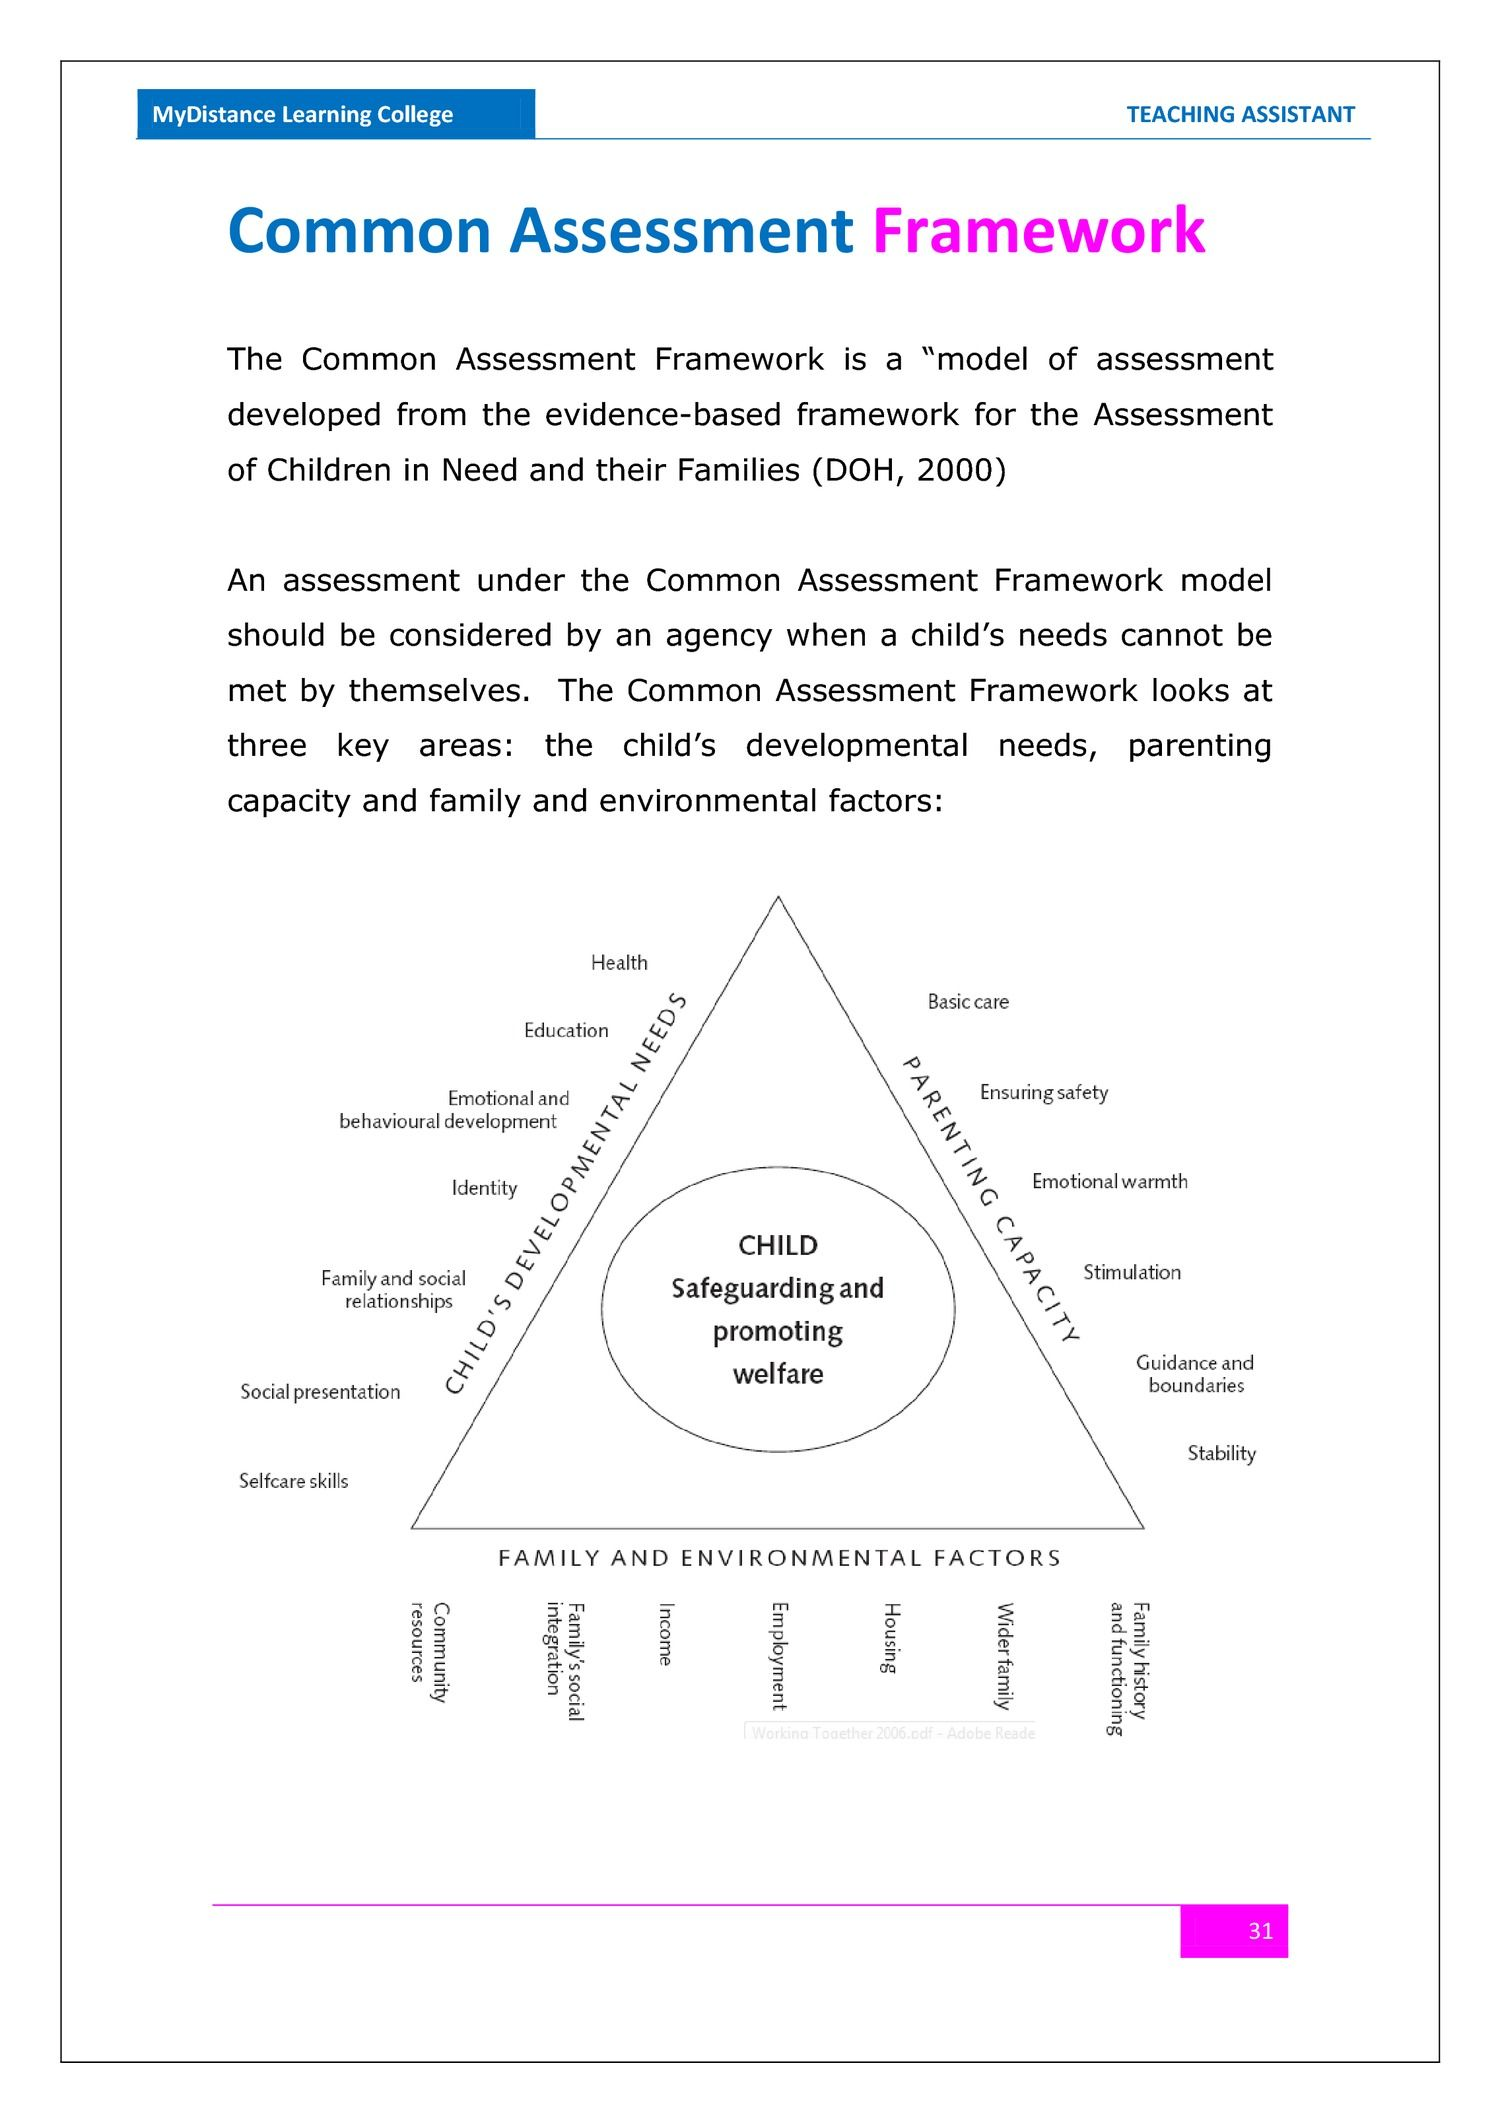 Common Assessment Framework For Assessment Of Children In